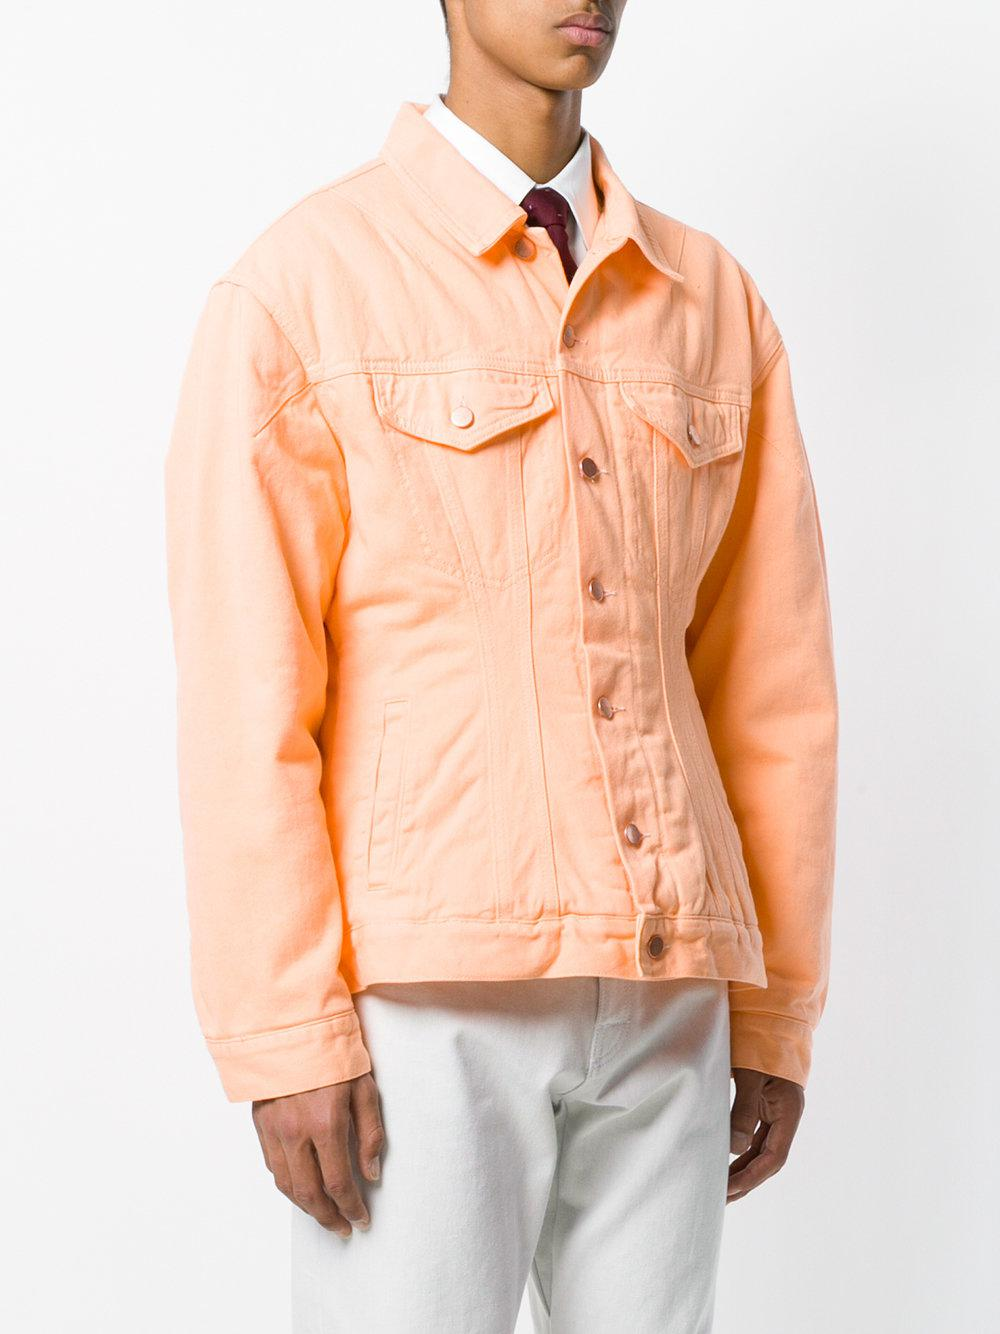 Martine Rose Quilted Denim Jacket in Yellow & Orange (Orange) for Men